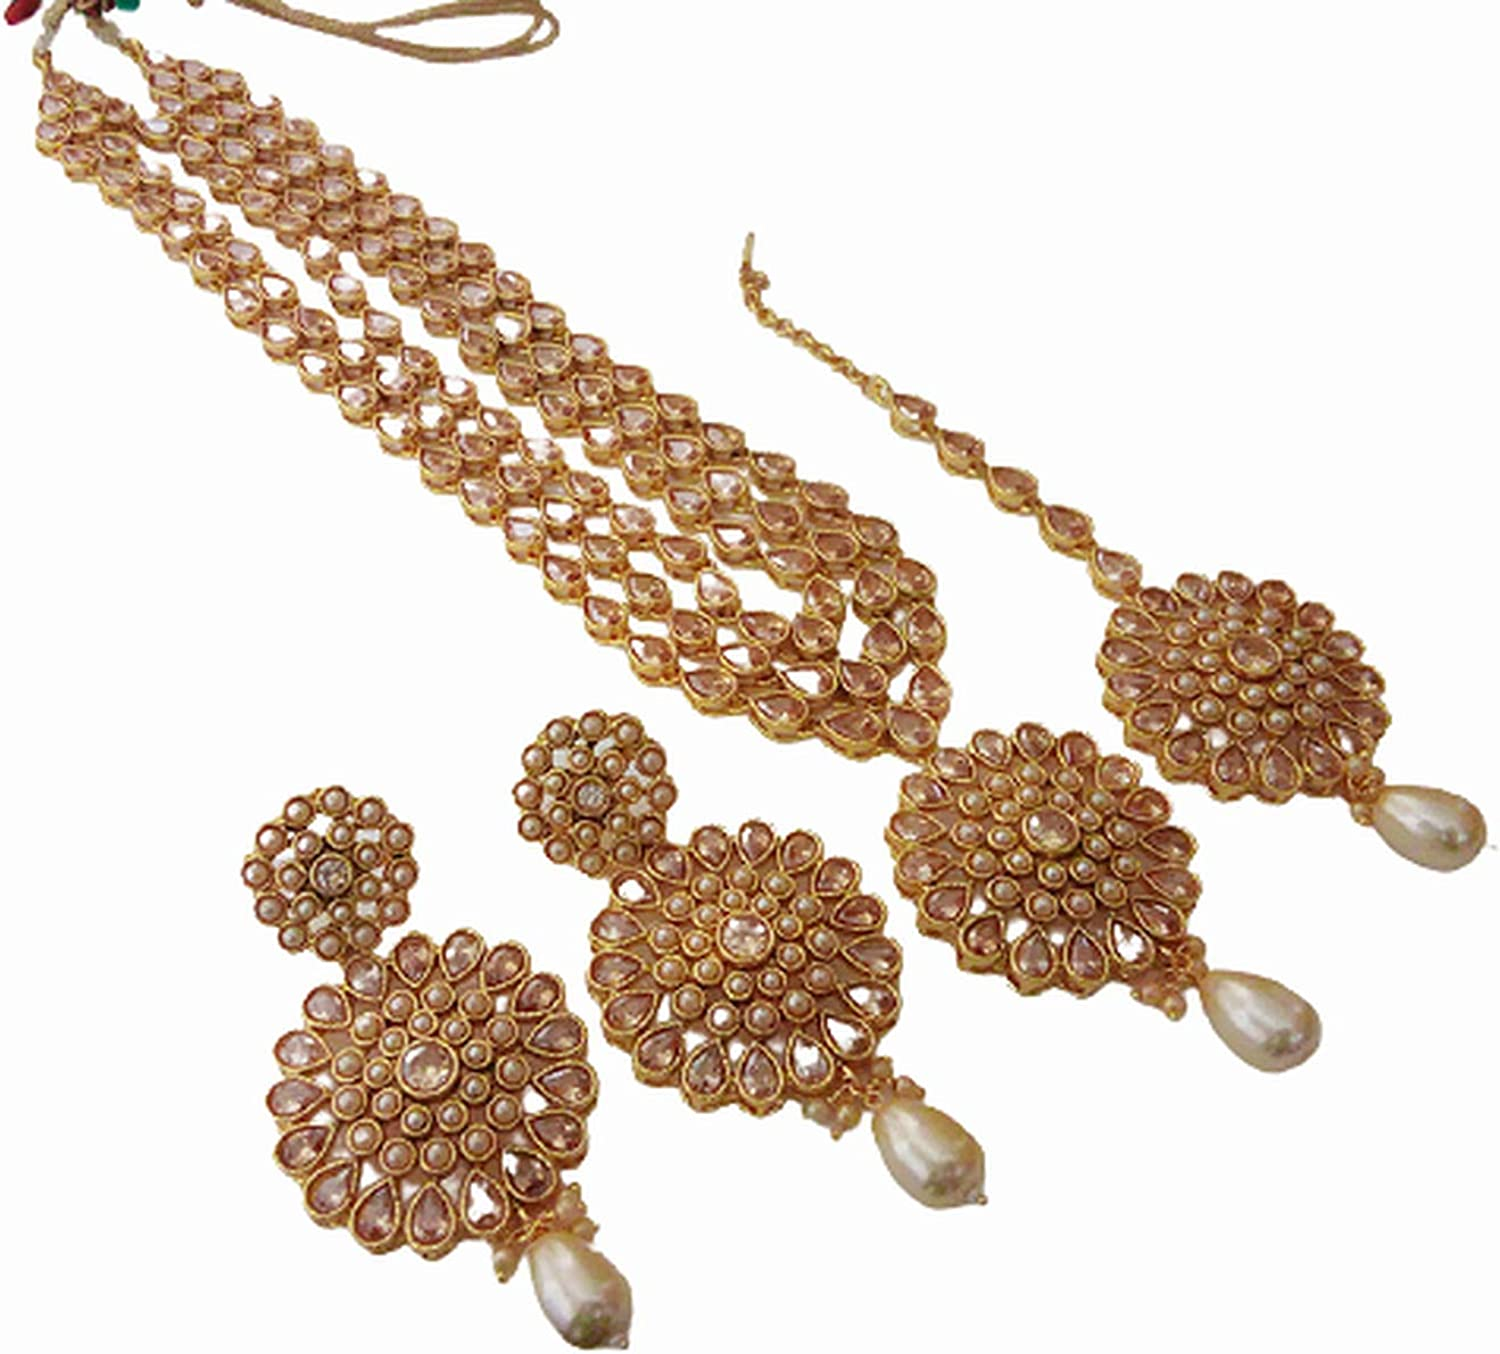 Tezshree (TJ) Indian Bollywood Jewelry Long Necklace Set Earring Tikka Ethnic Gold Plated